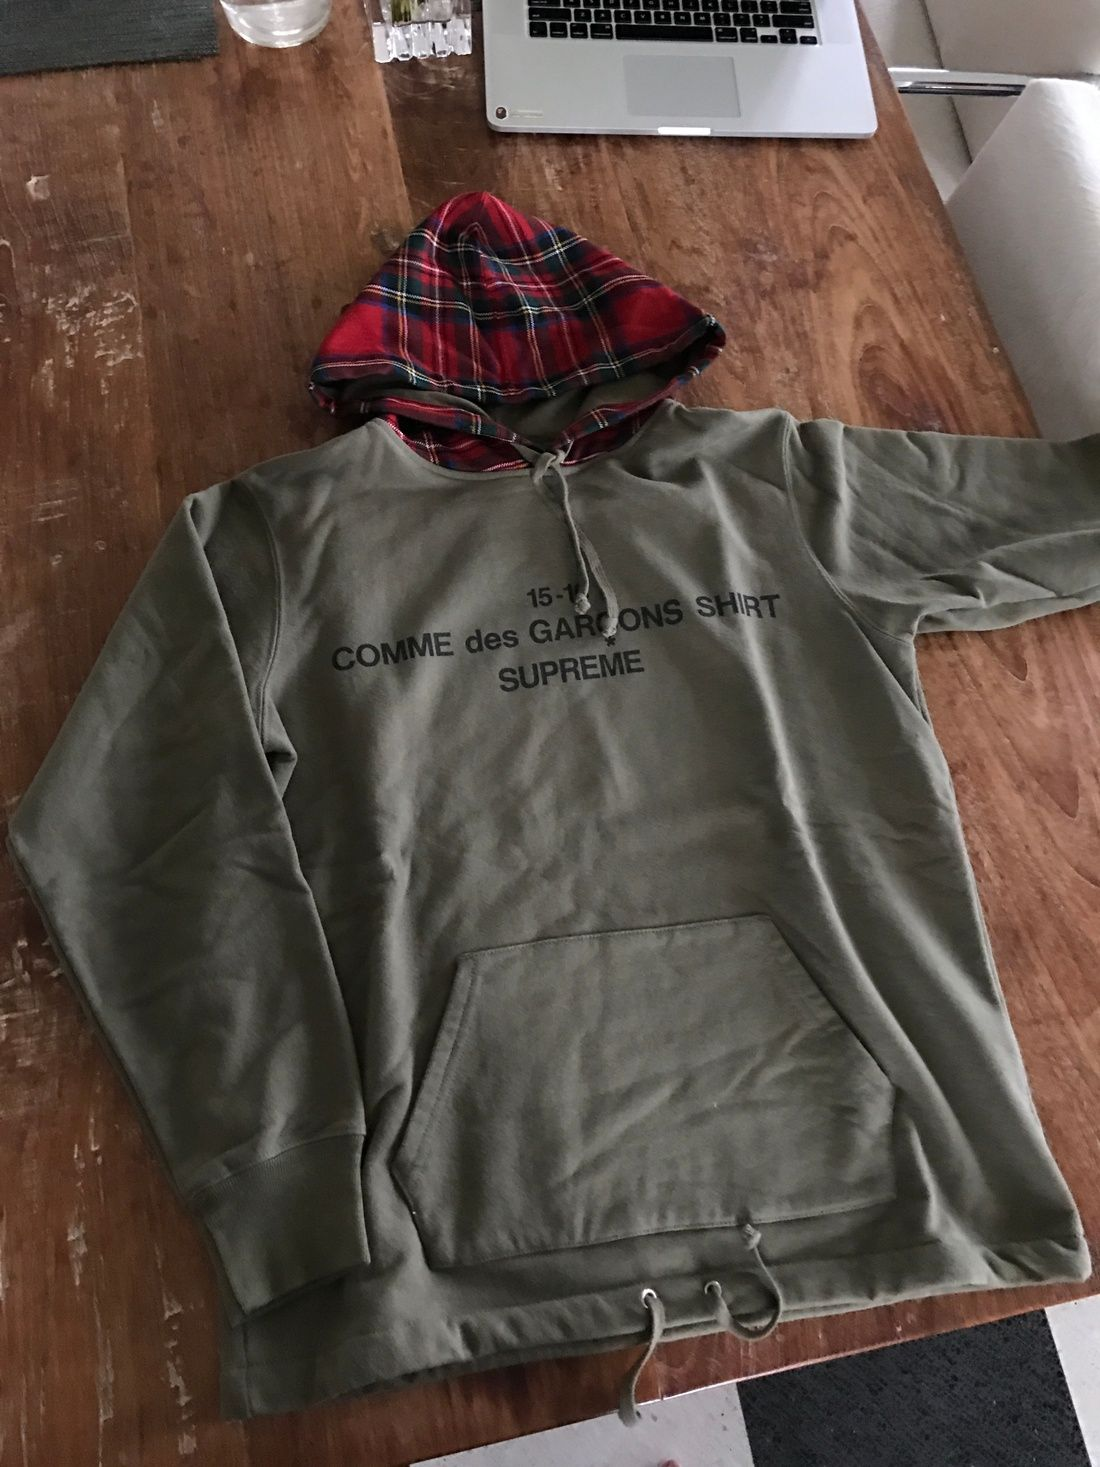 87adfd62e Comme Des Garcons × Supreme Olive Cdg Shirt Hoodie Size S  630 - Grailed